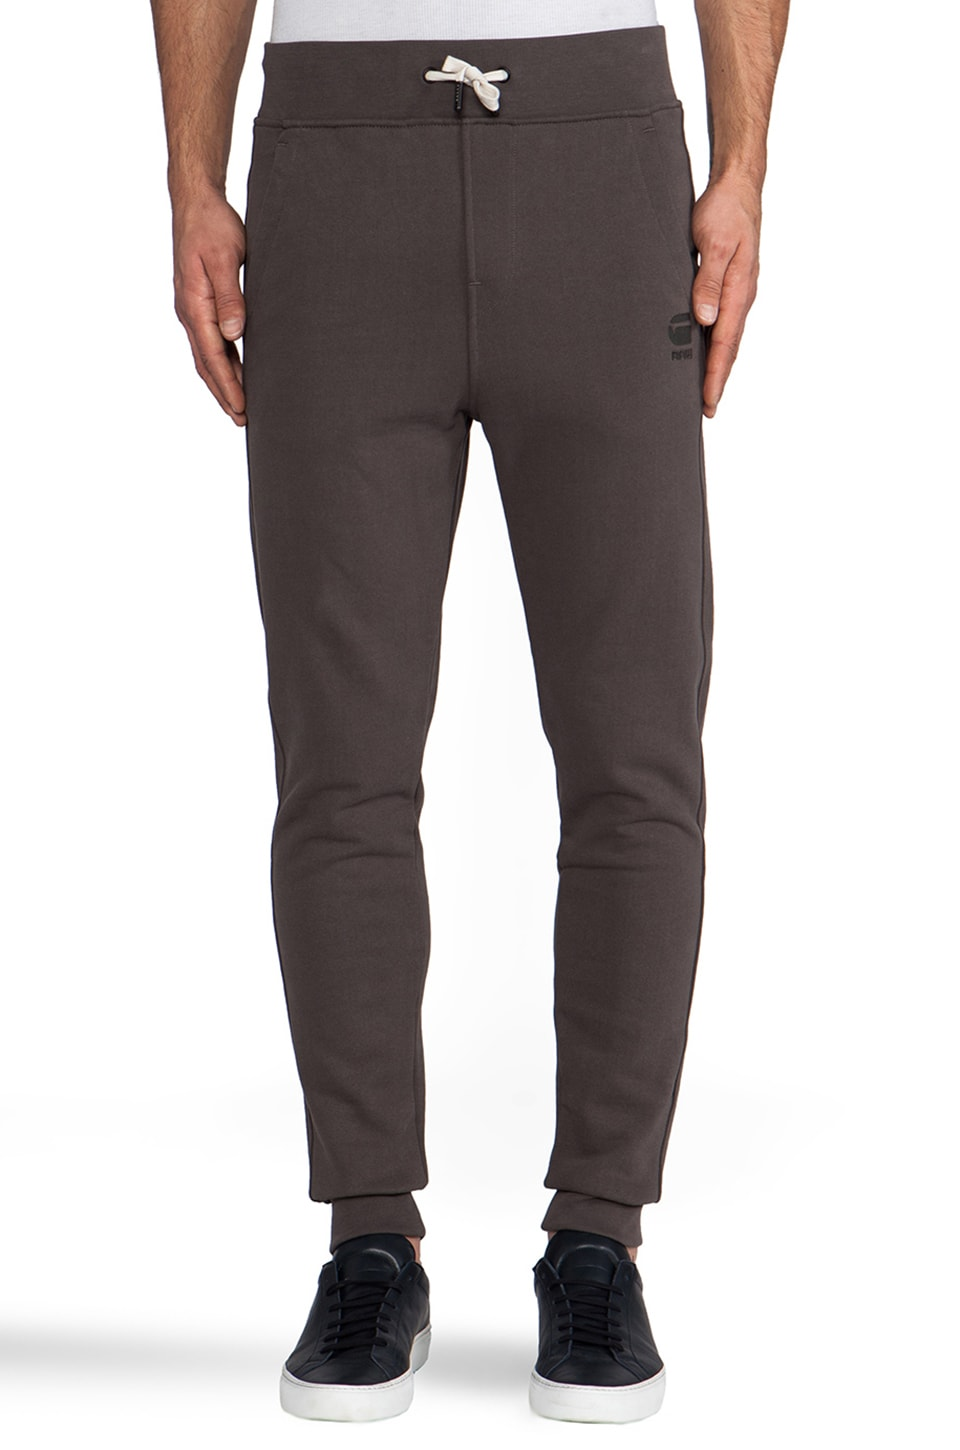 G-Star Navy Raw Sweatpant in Castor